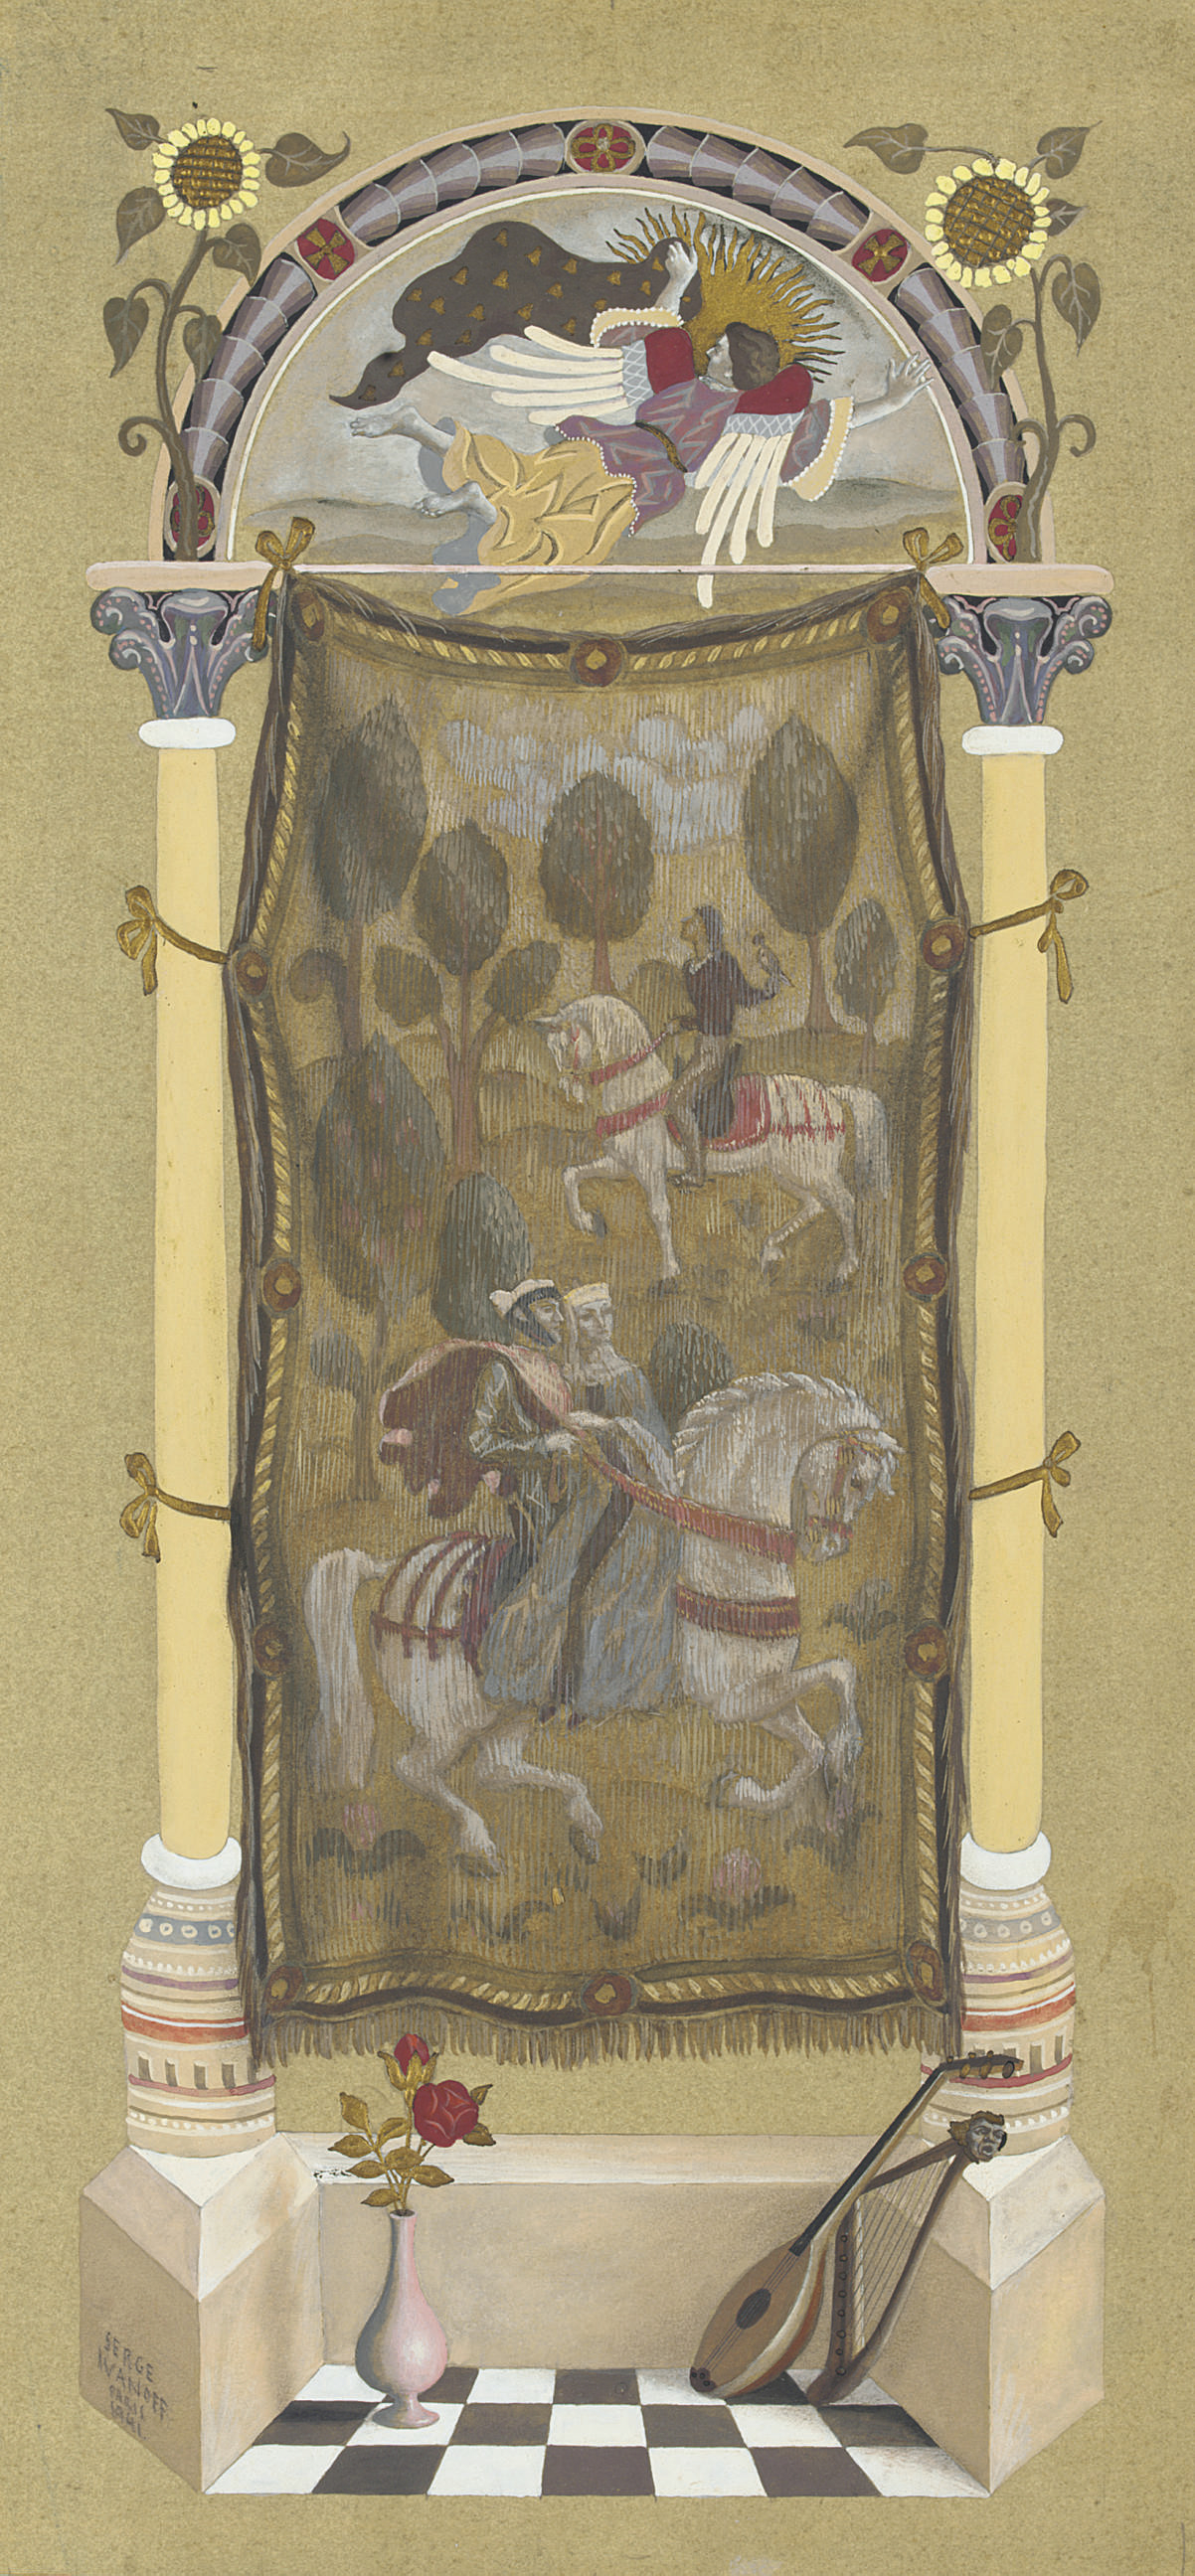 A tapestry hanging between decorative columns